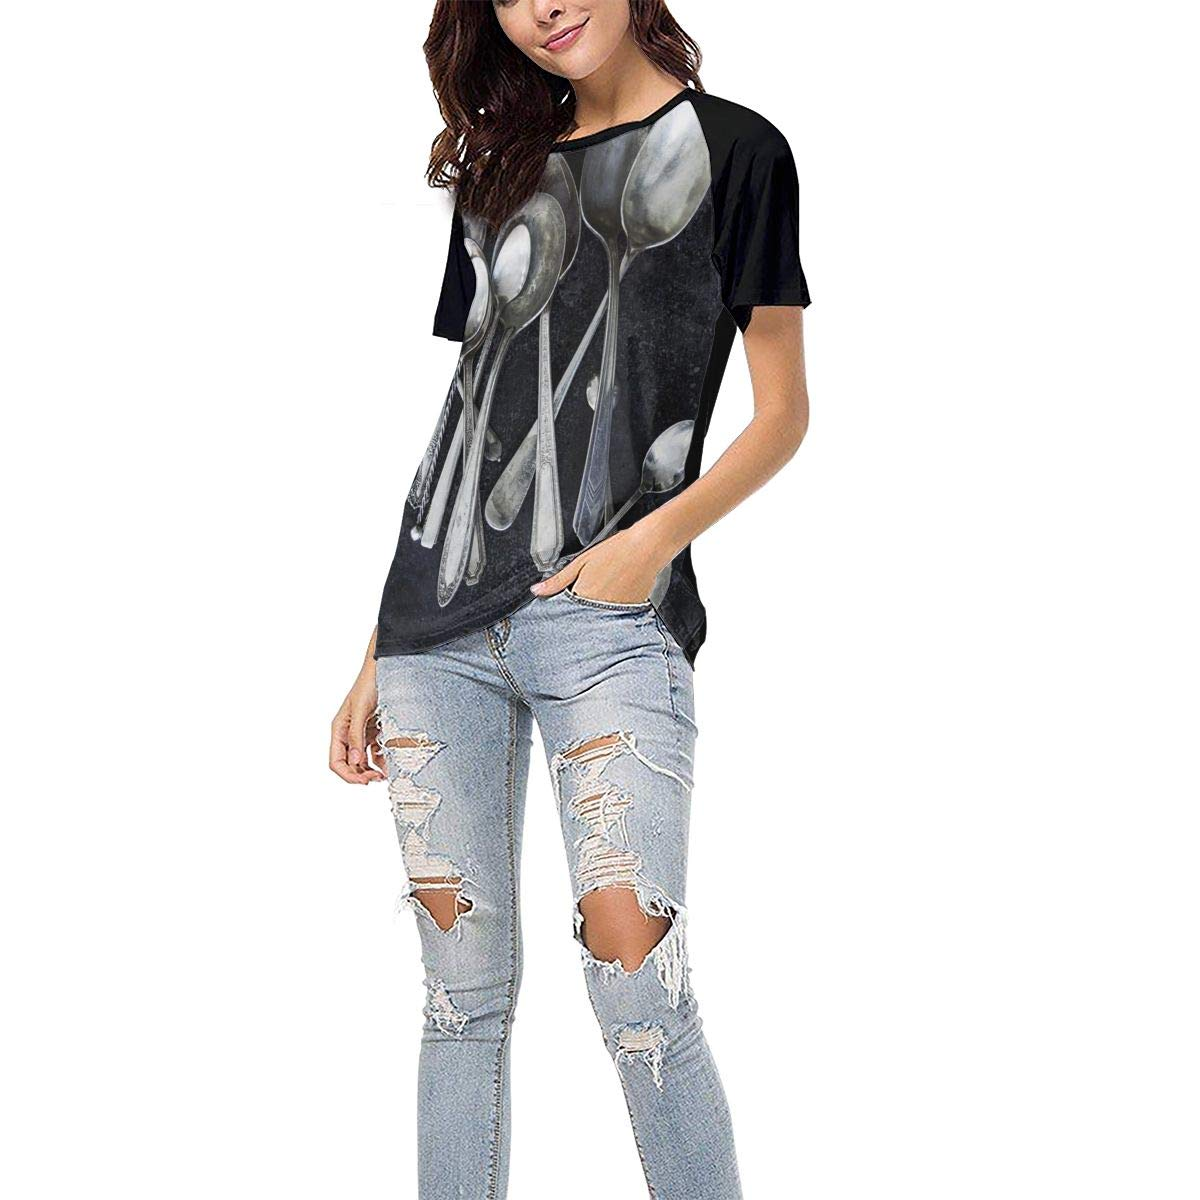 Old Silver Spoon Casual Raglan Tee Baseball Tshirts Tops Blouse Laki-co Womens Summer Short Sleeve